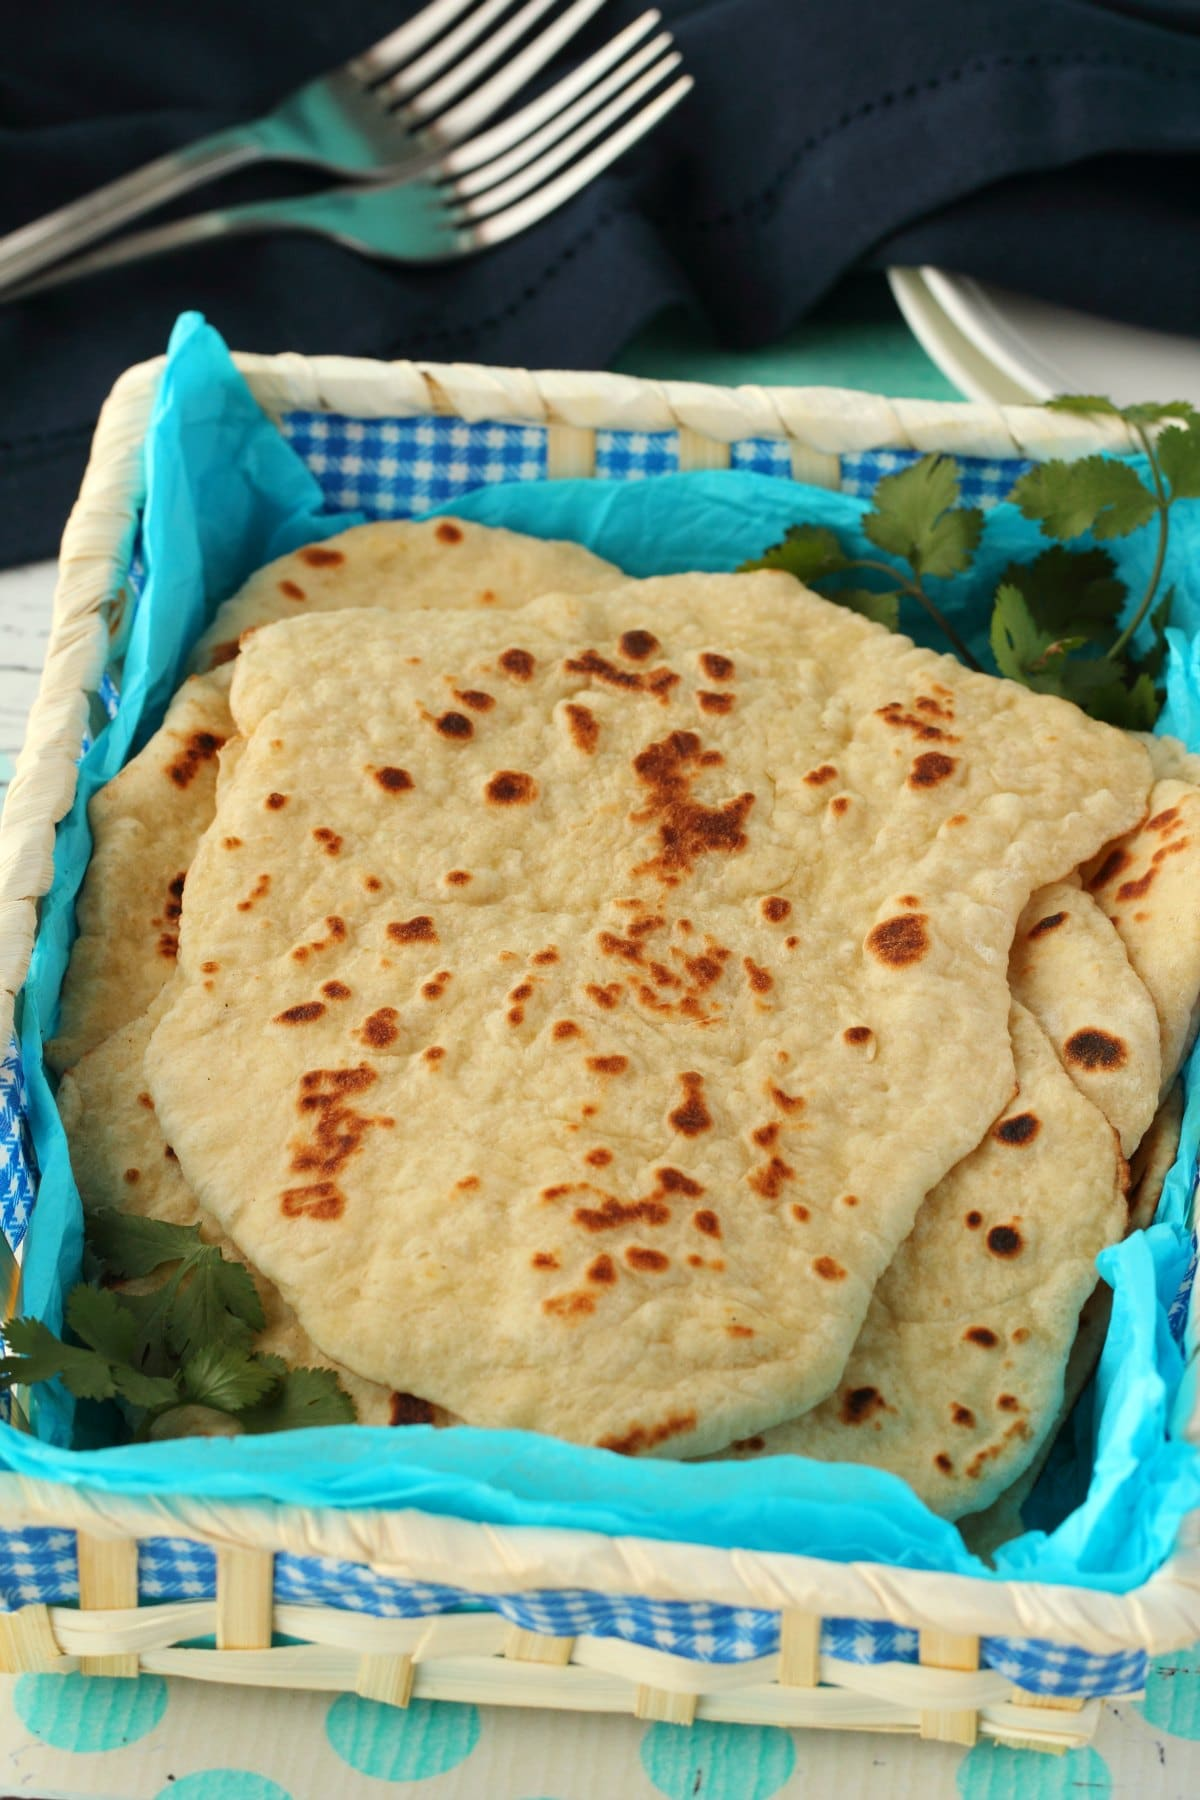 Vegan Naan and cilantro in a basket lined with blue paper.